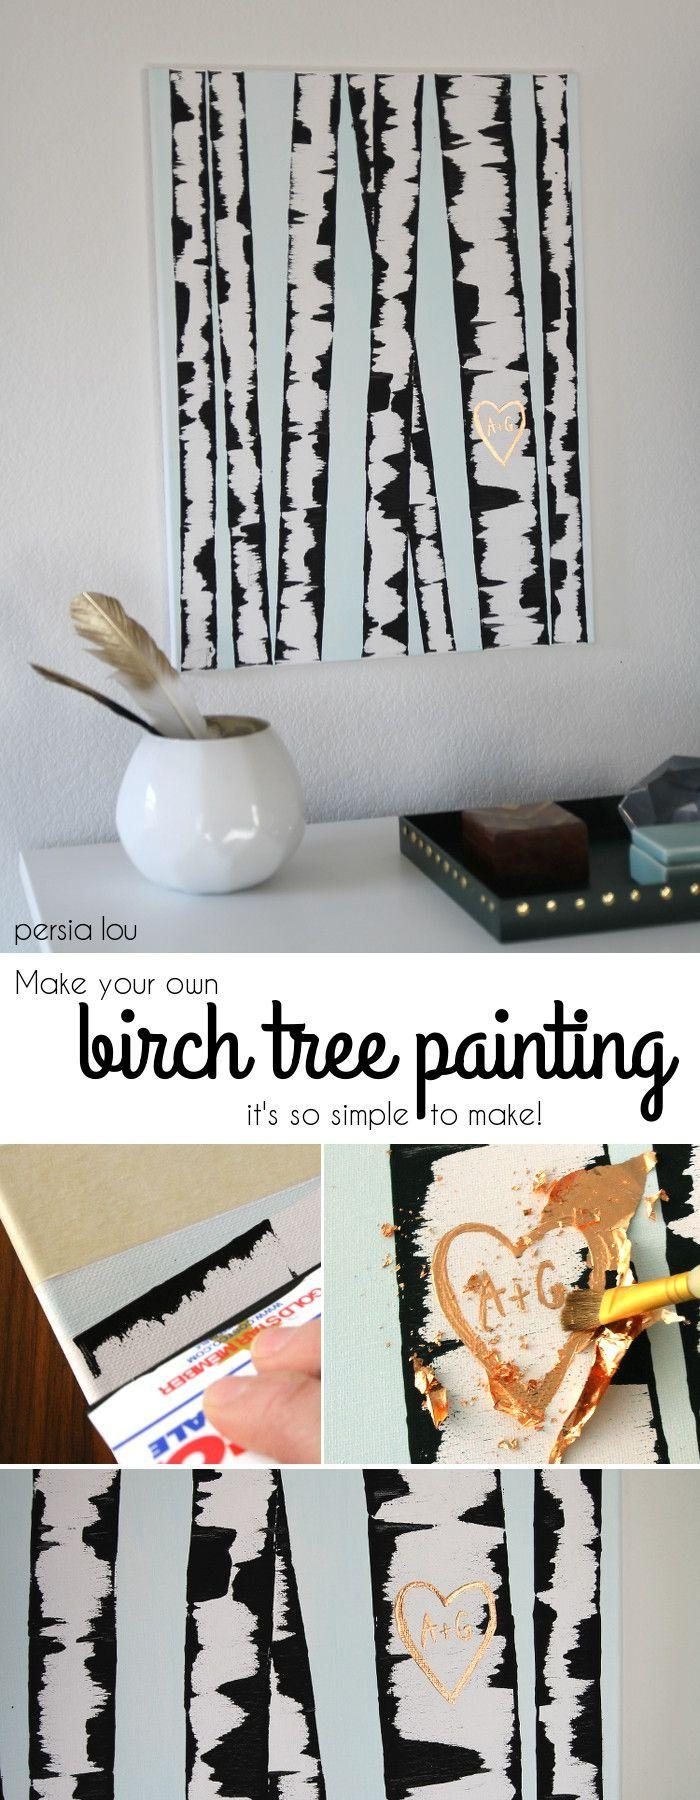 Best 20+ Canvas Wall Art Ideas On Pinterest—No Signup Required With Regard To Cheap Big Wall Art (View 12 of 20)